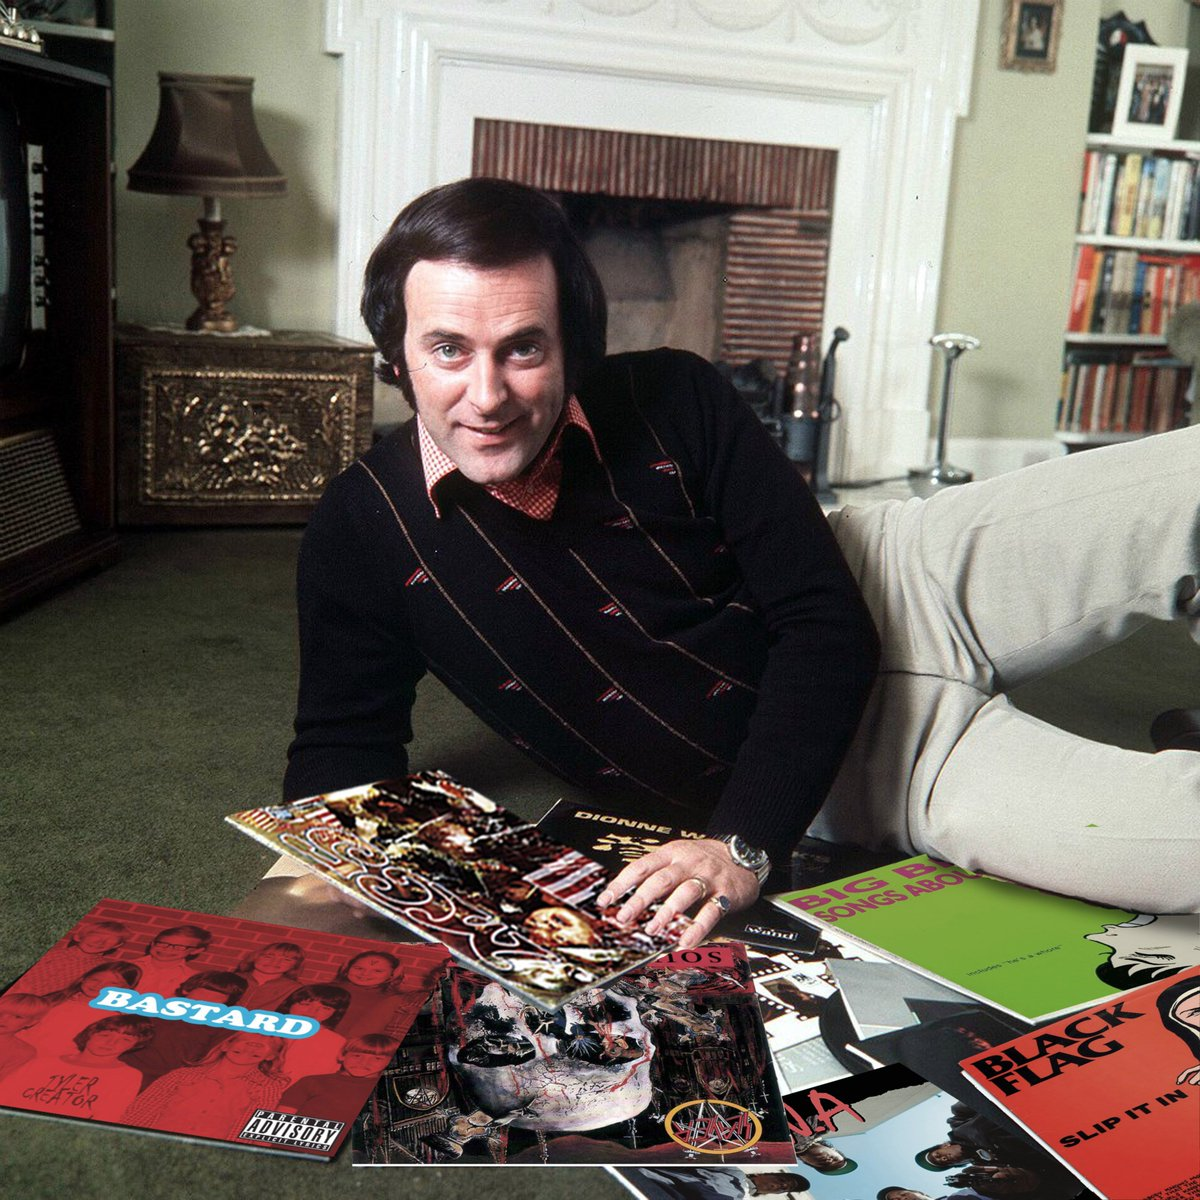 Relaxing at home with the music he loved the most. RIP Wogan. https://t.co/q28Ap9zBR6